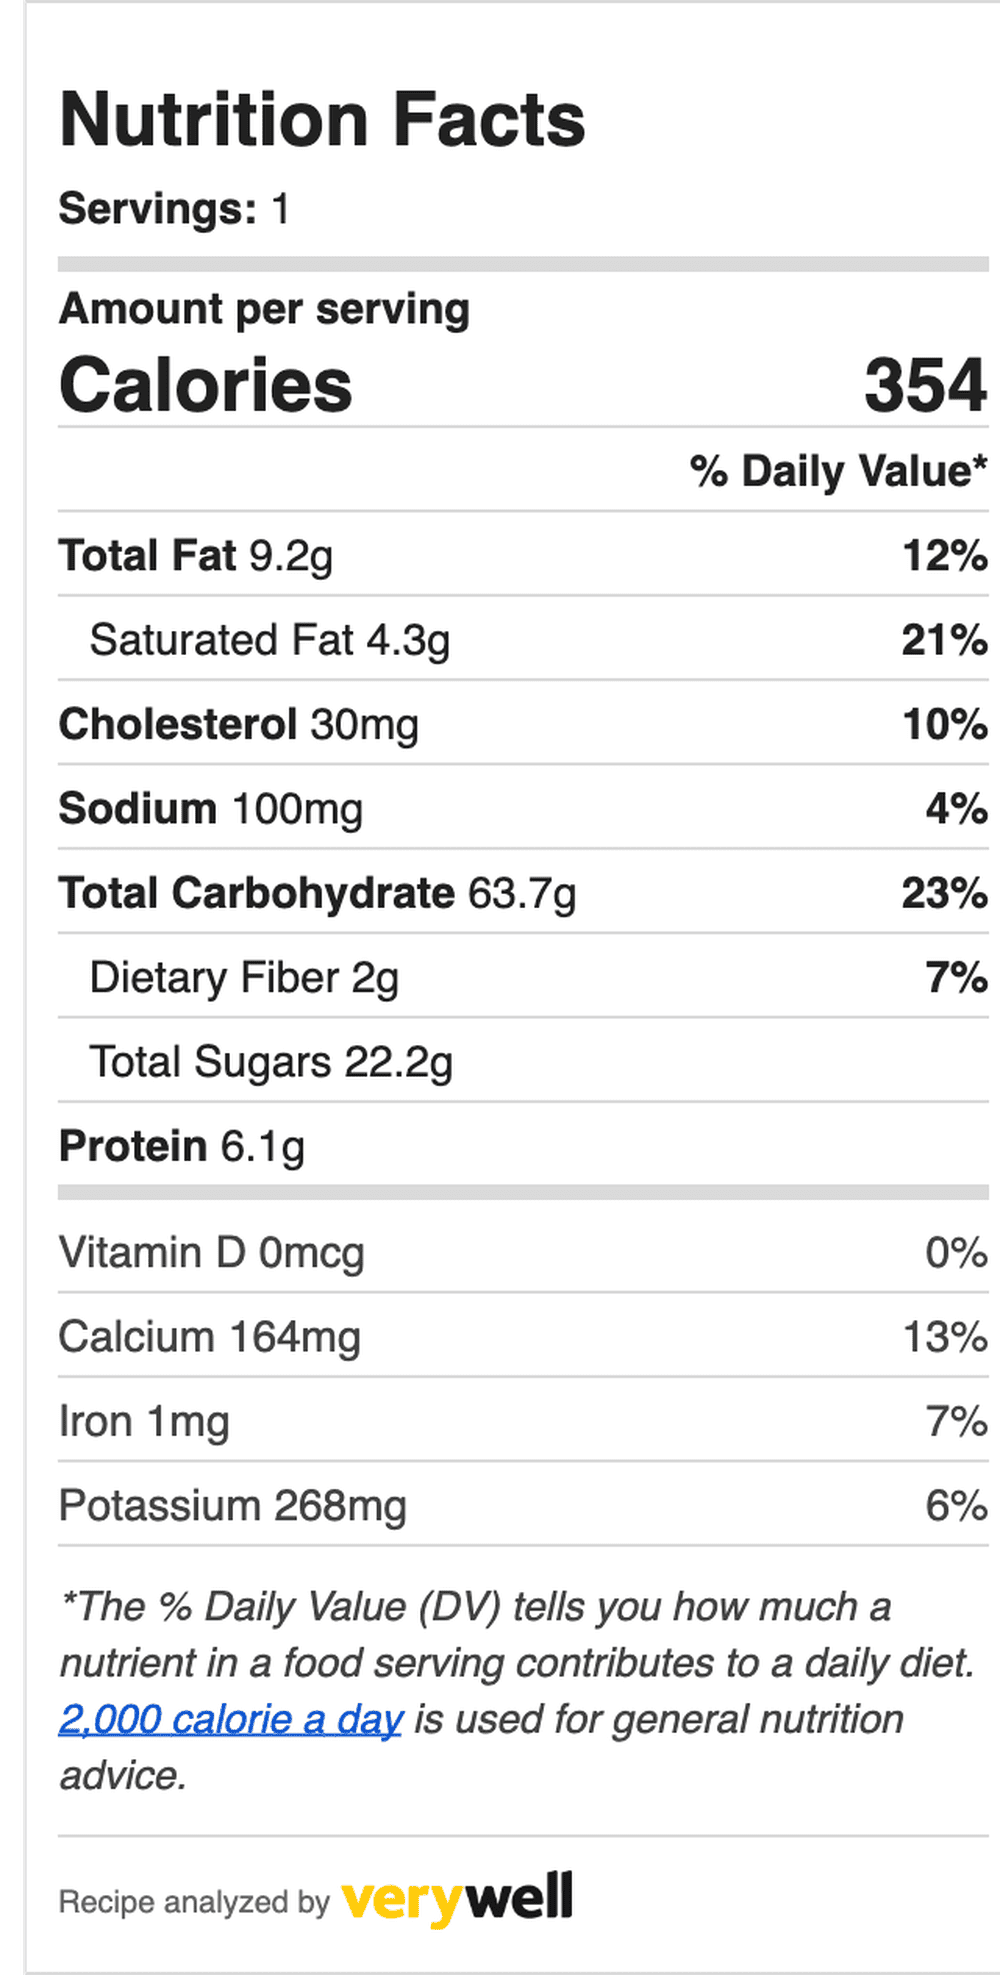 Nutrition Facts for Product Cold School Lunch Ideas